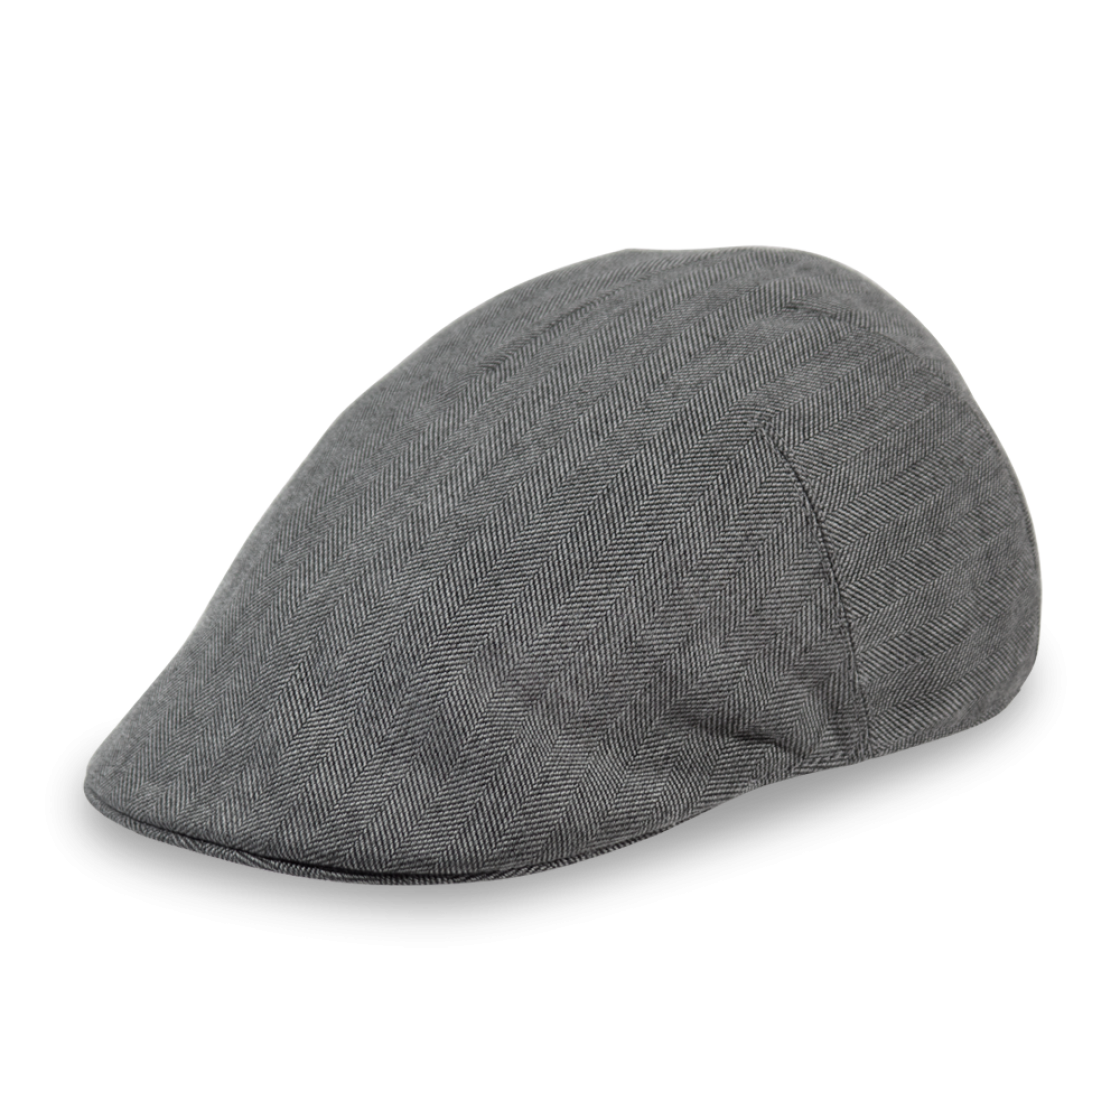 This super sleek and lightweight flat cap is Italian made with a beautiful  herringbone pattern 973372418ff